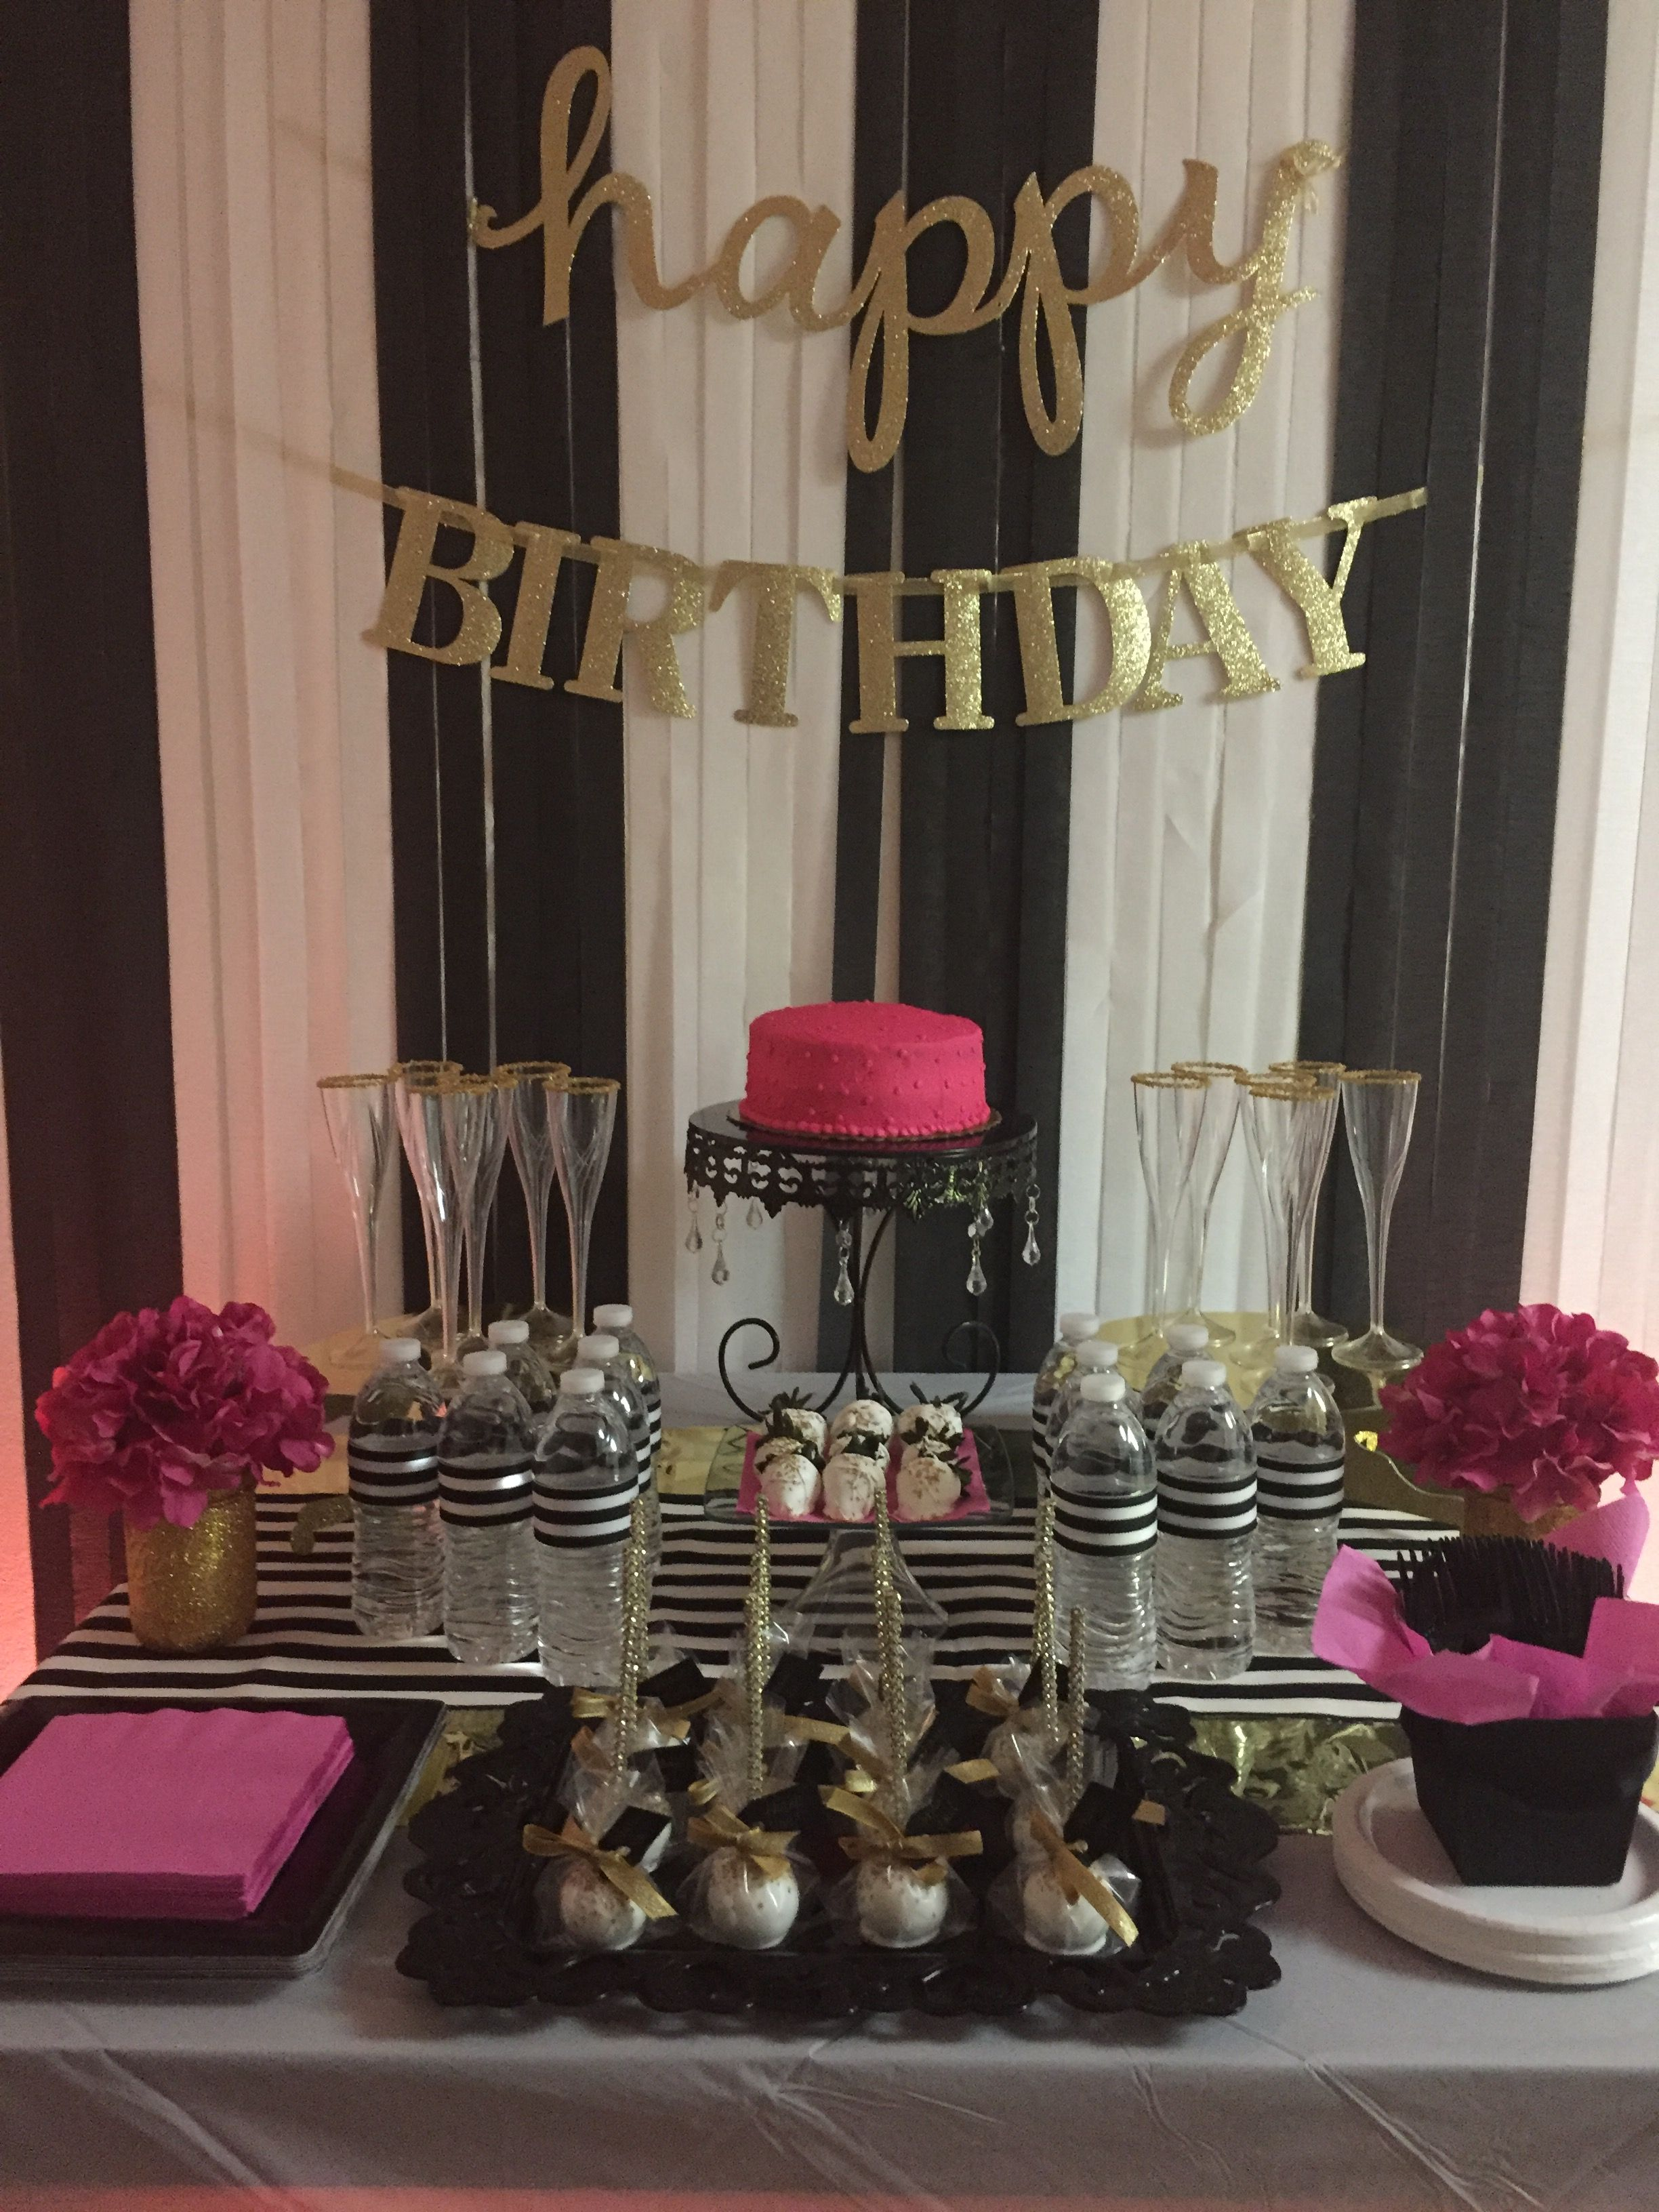 decor for birthday him party stock inspiration decorations luxury of ideas cake